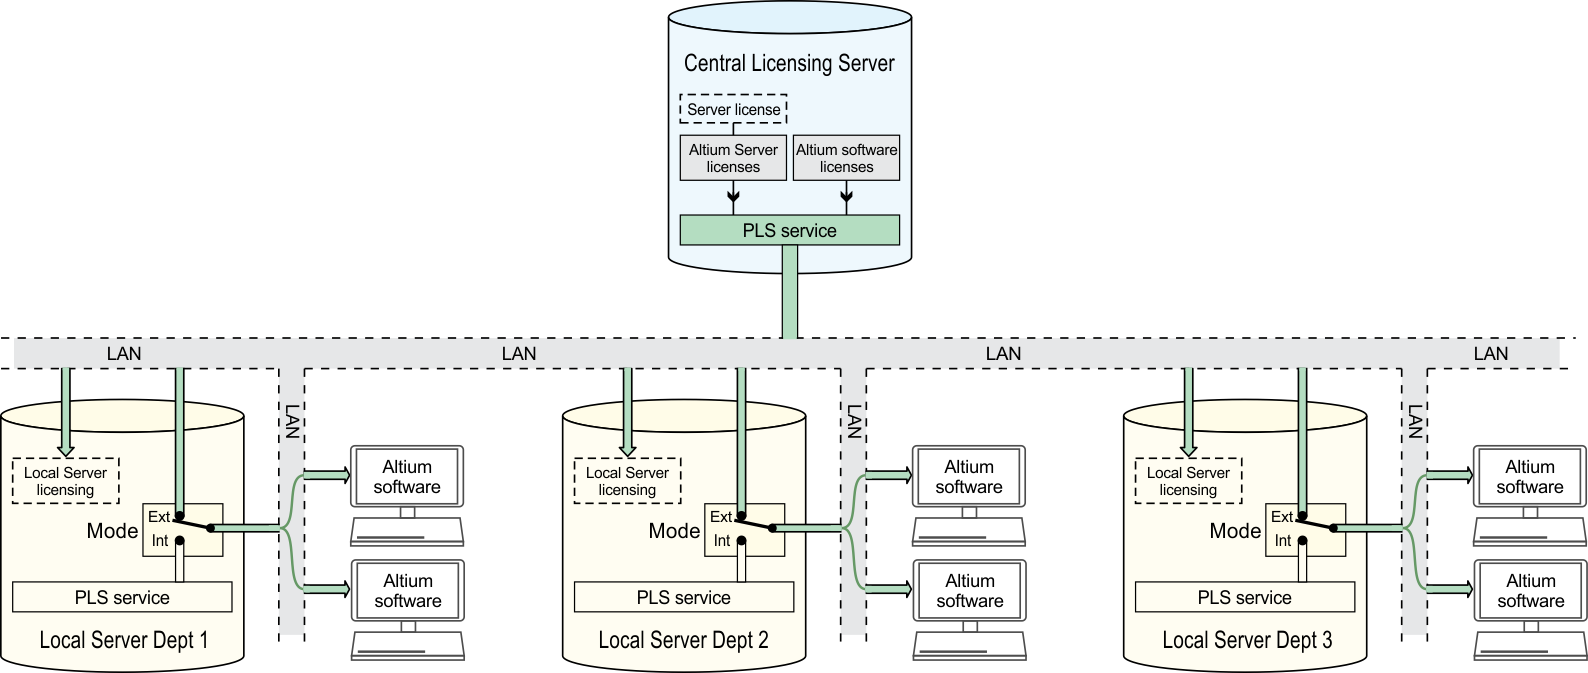 Private License Service Online Documentation For Altium Products Network Diagram Internetbased Servers Scenario 4 With Internet The Central Licensing Server Is Set To Local Pls Mode And No Authentication Are Externals Where Their Assigned